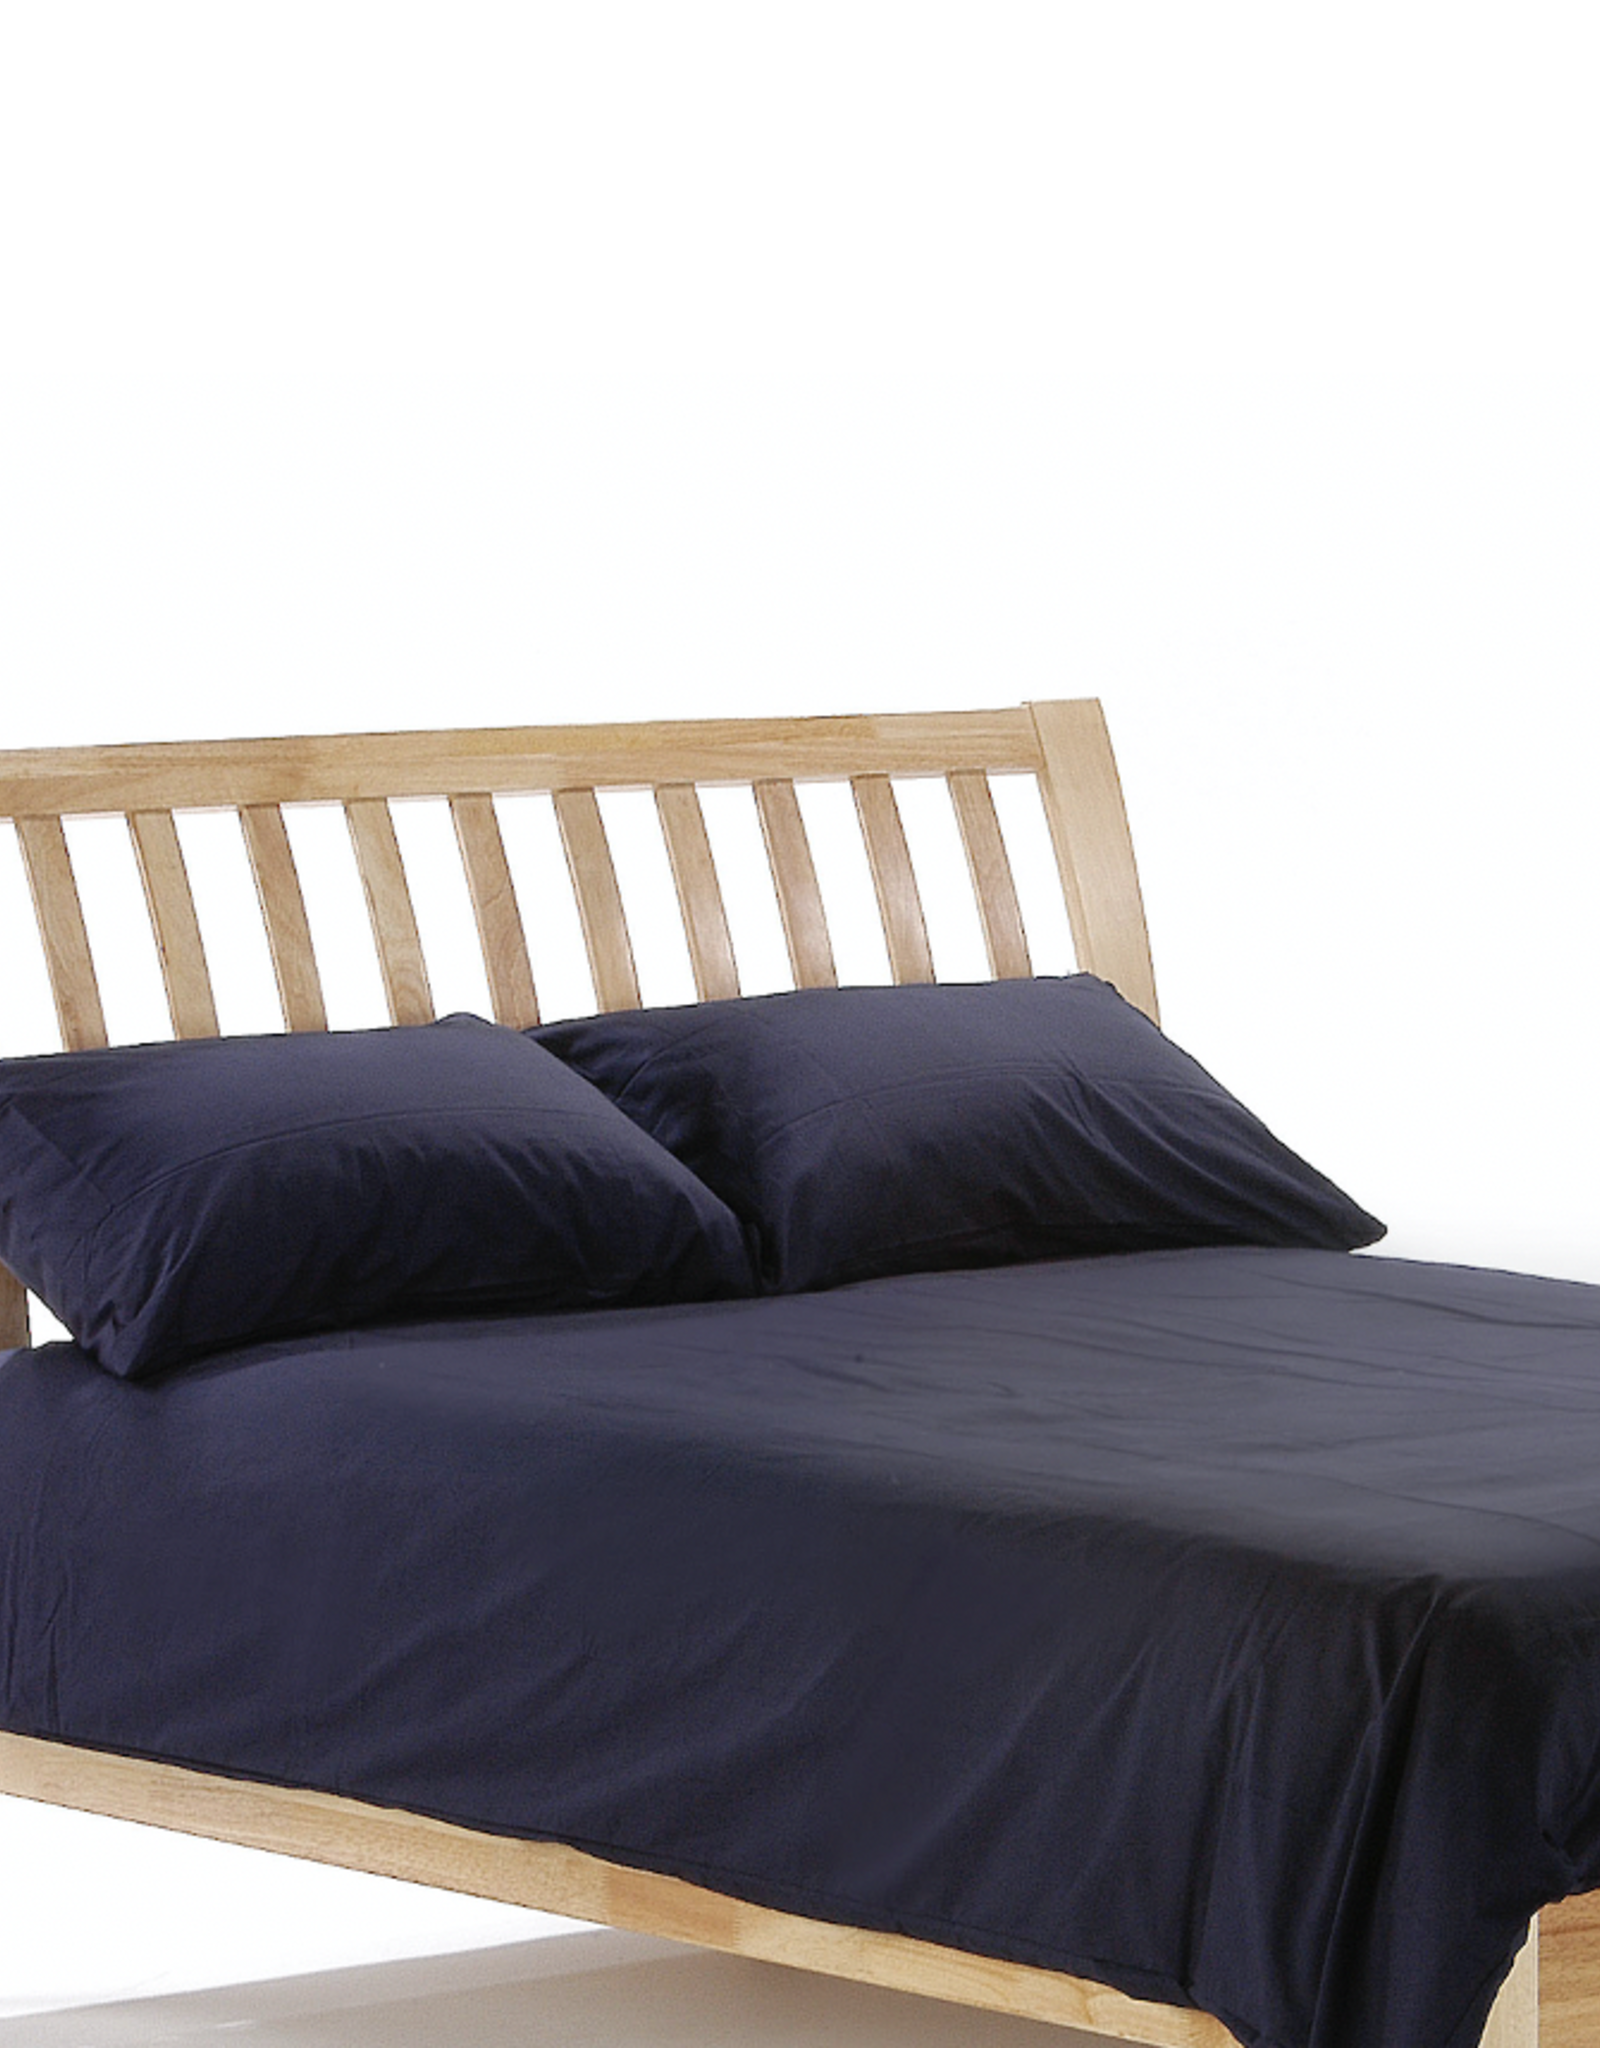 Nutmeg Headboard - Comes in Five Colors